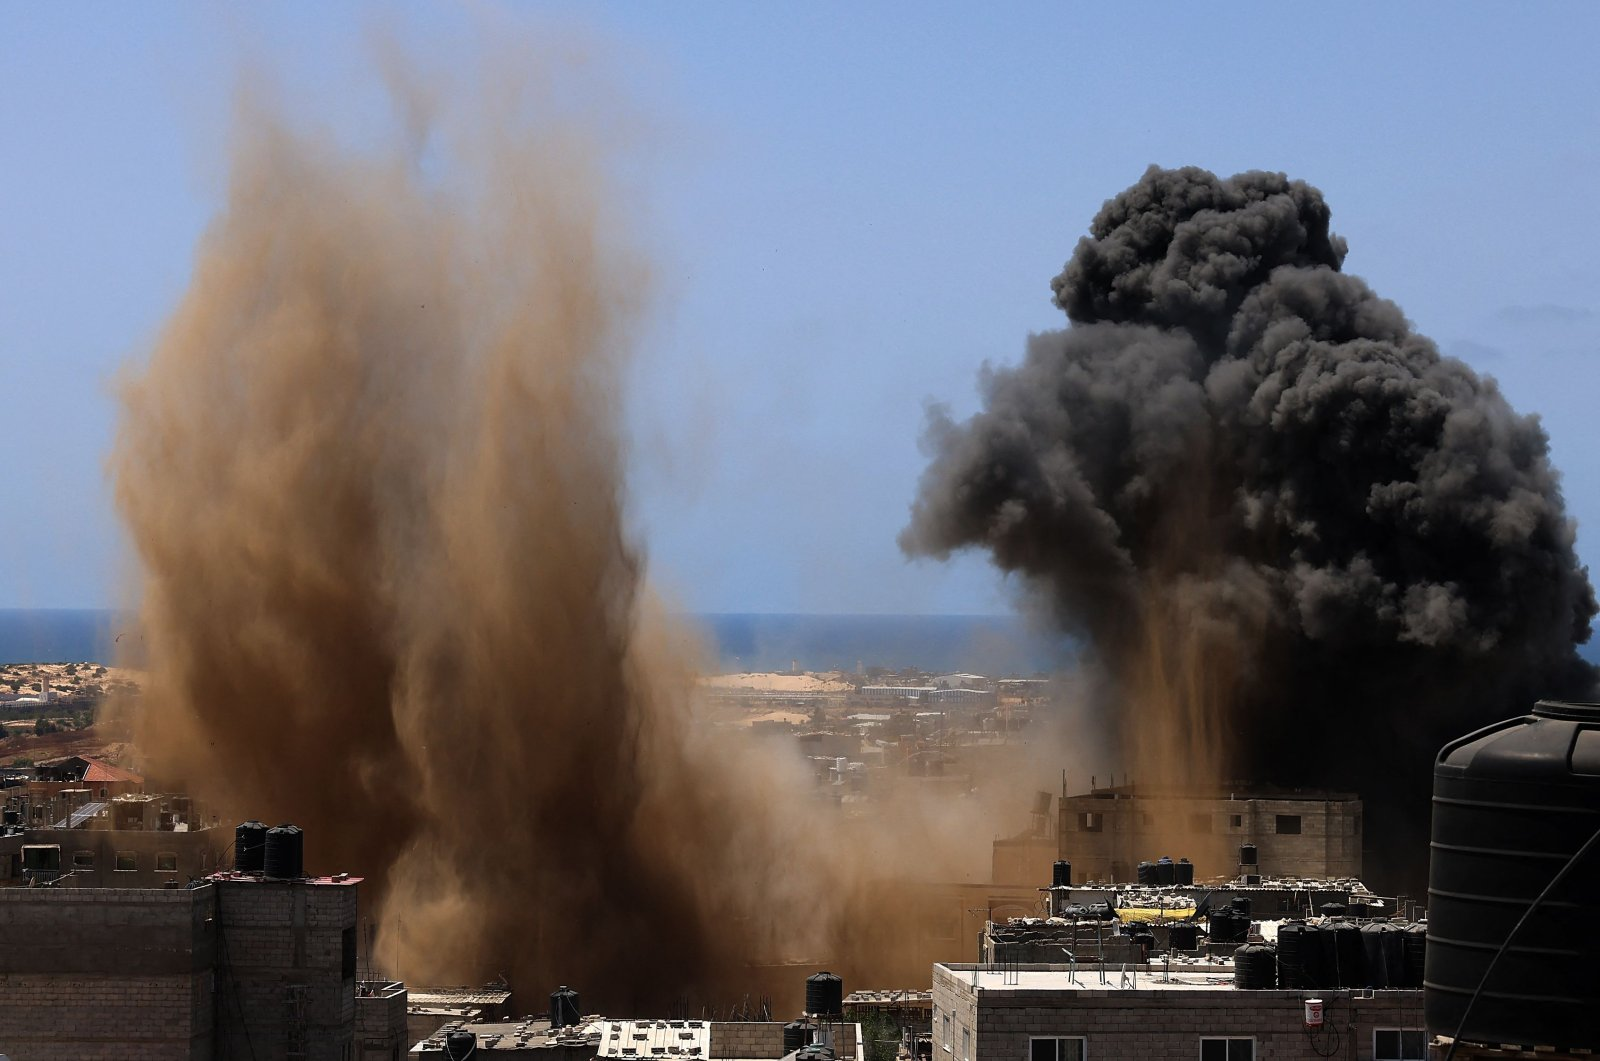 A building is hit during an Israeli airstrike in Rafah in the southern Gaza Strip, Palestine, May 20, 2021. (AFP Photo)